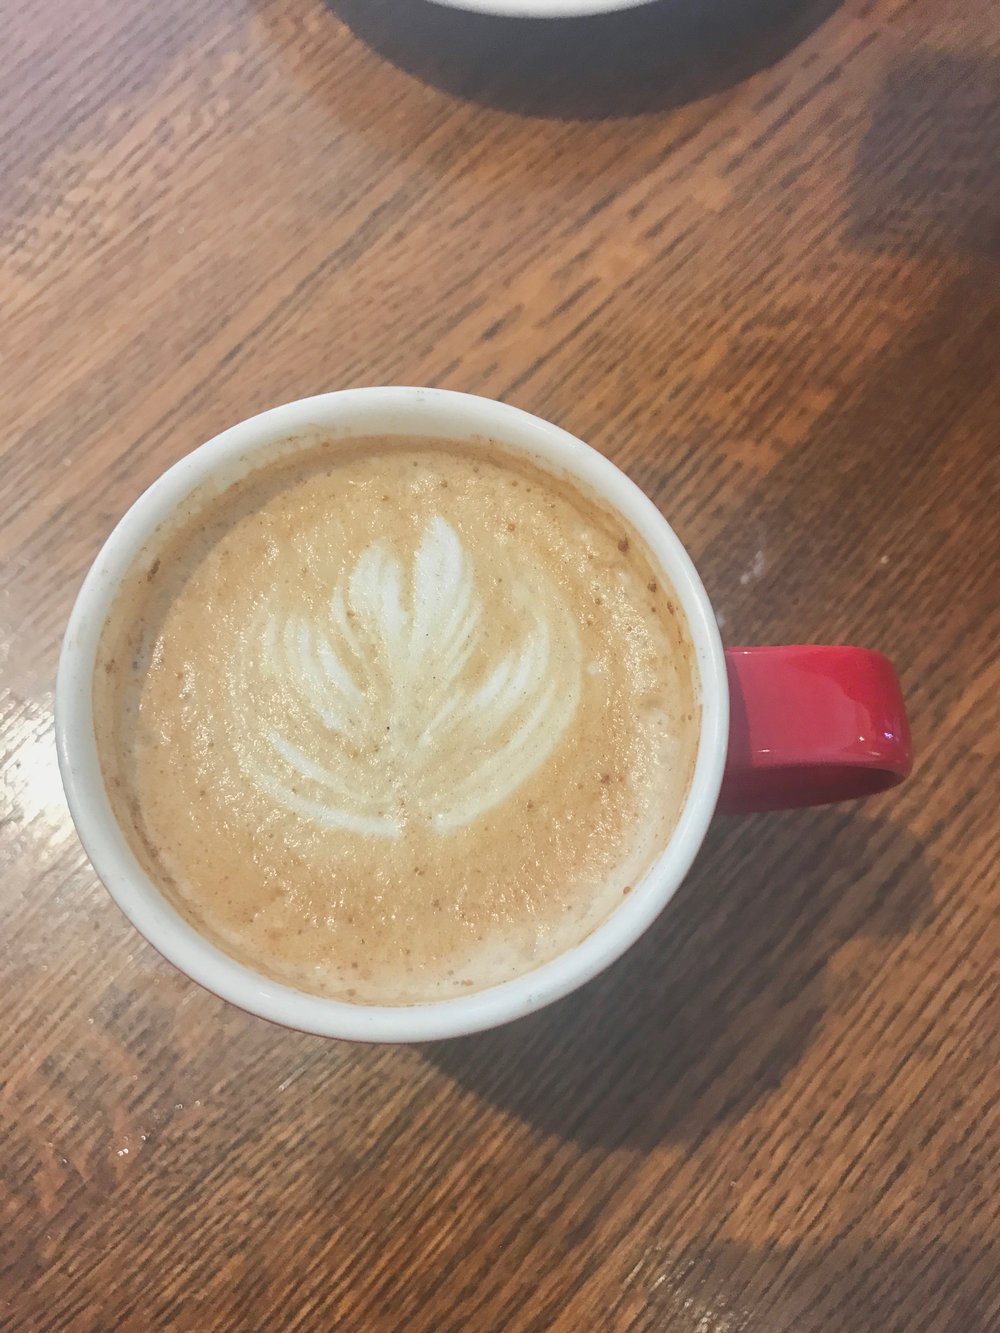 Try the Bee Stinger if you make it! Such a cozy latte in the best red mug.